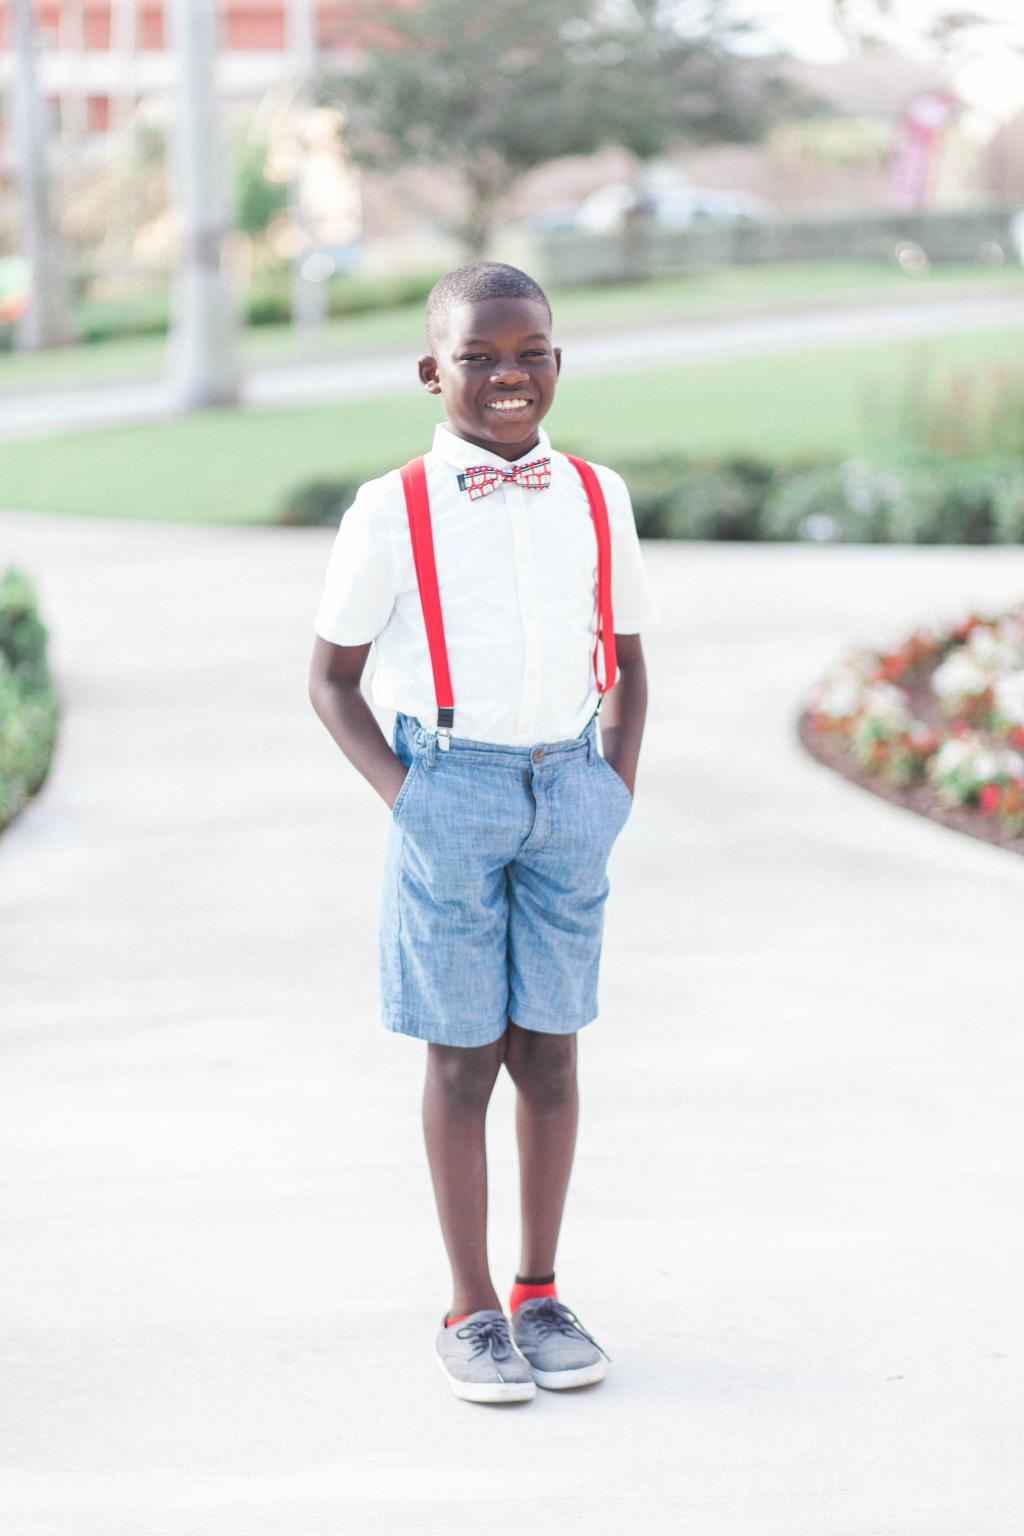 Young boy standing and smiling